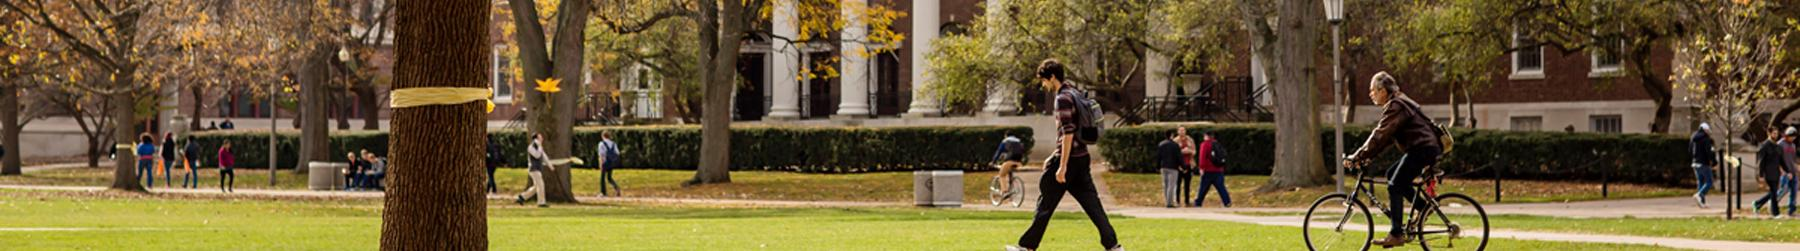 Students pass through the Main Quad amidst falling autumn leaves